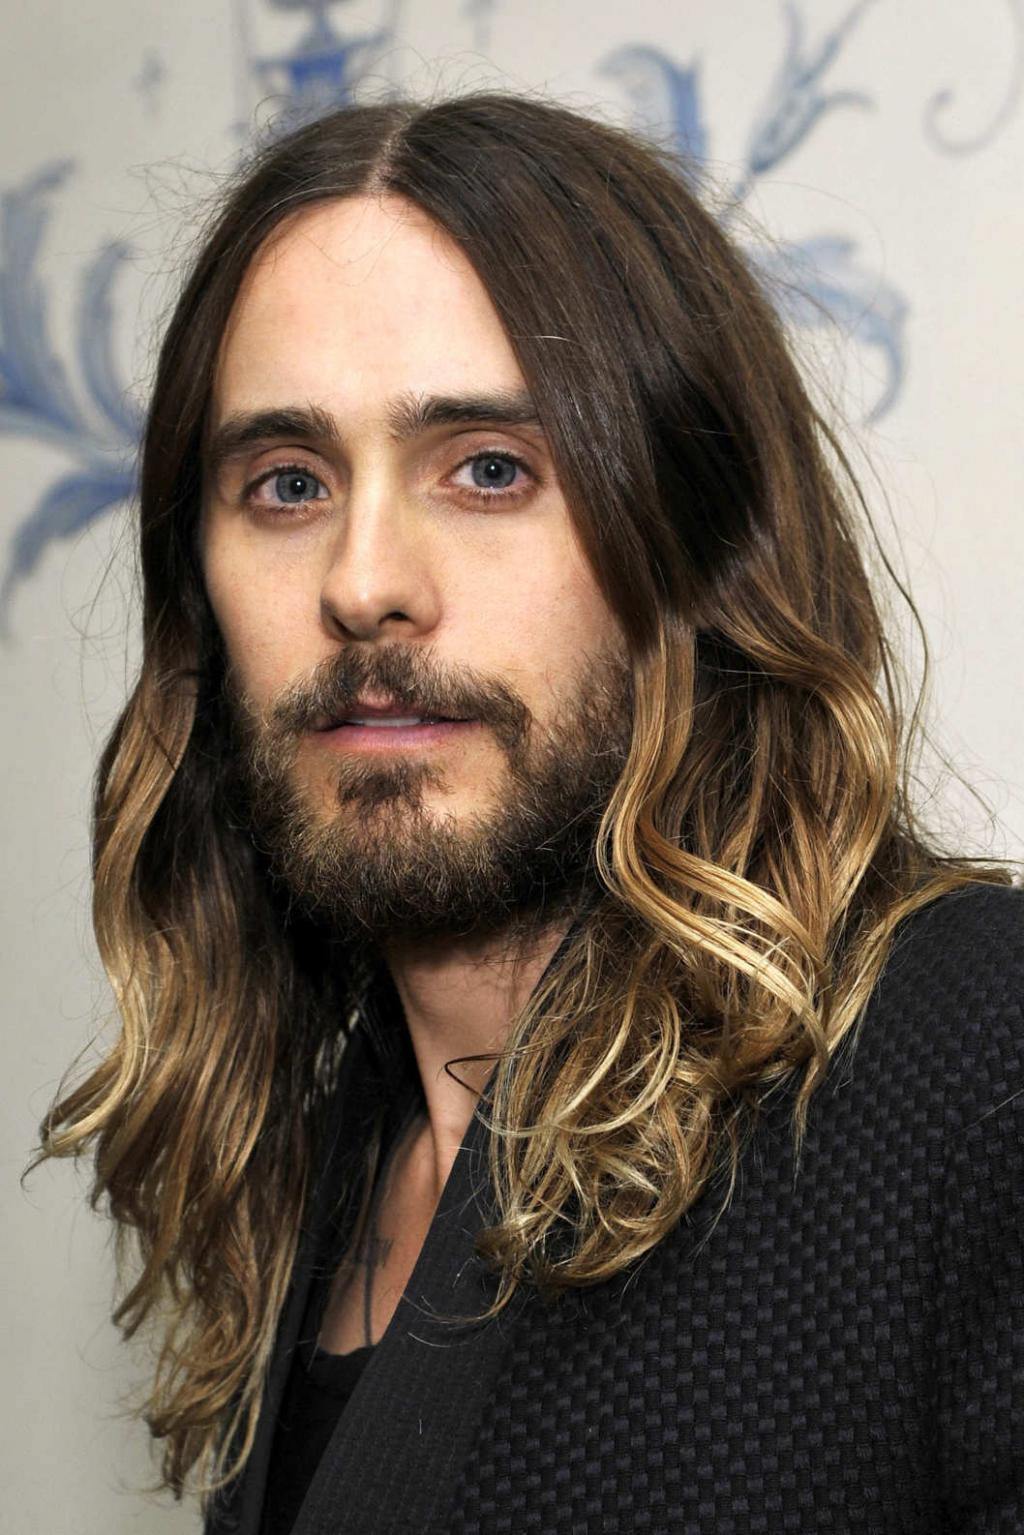 Say Goodbye To Jared Leto's Jesus Hair     Flavorwire